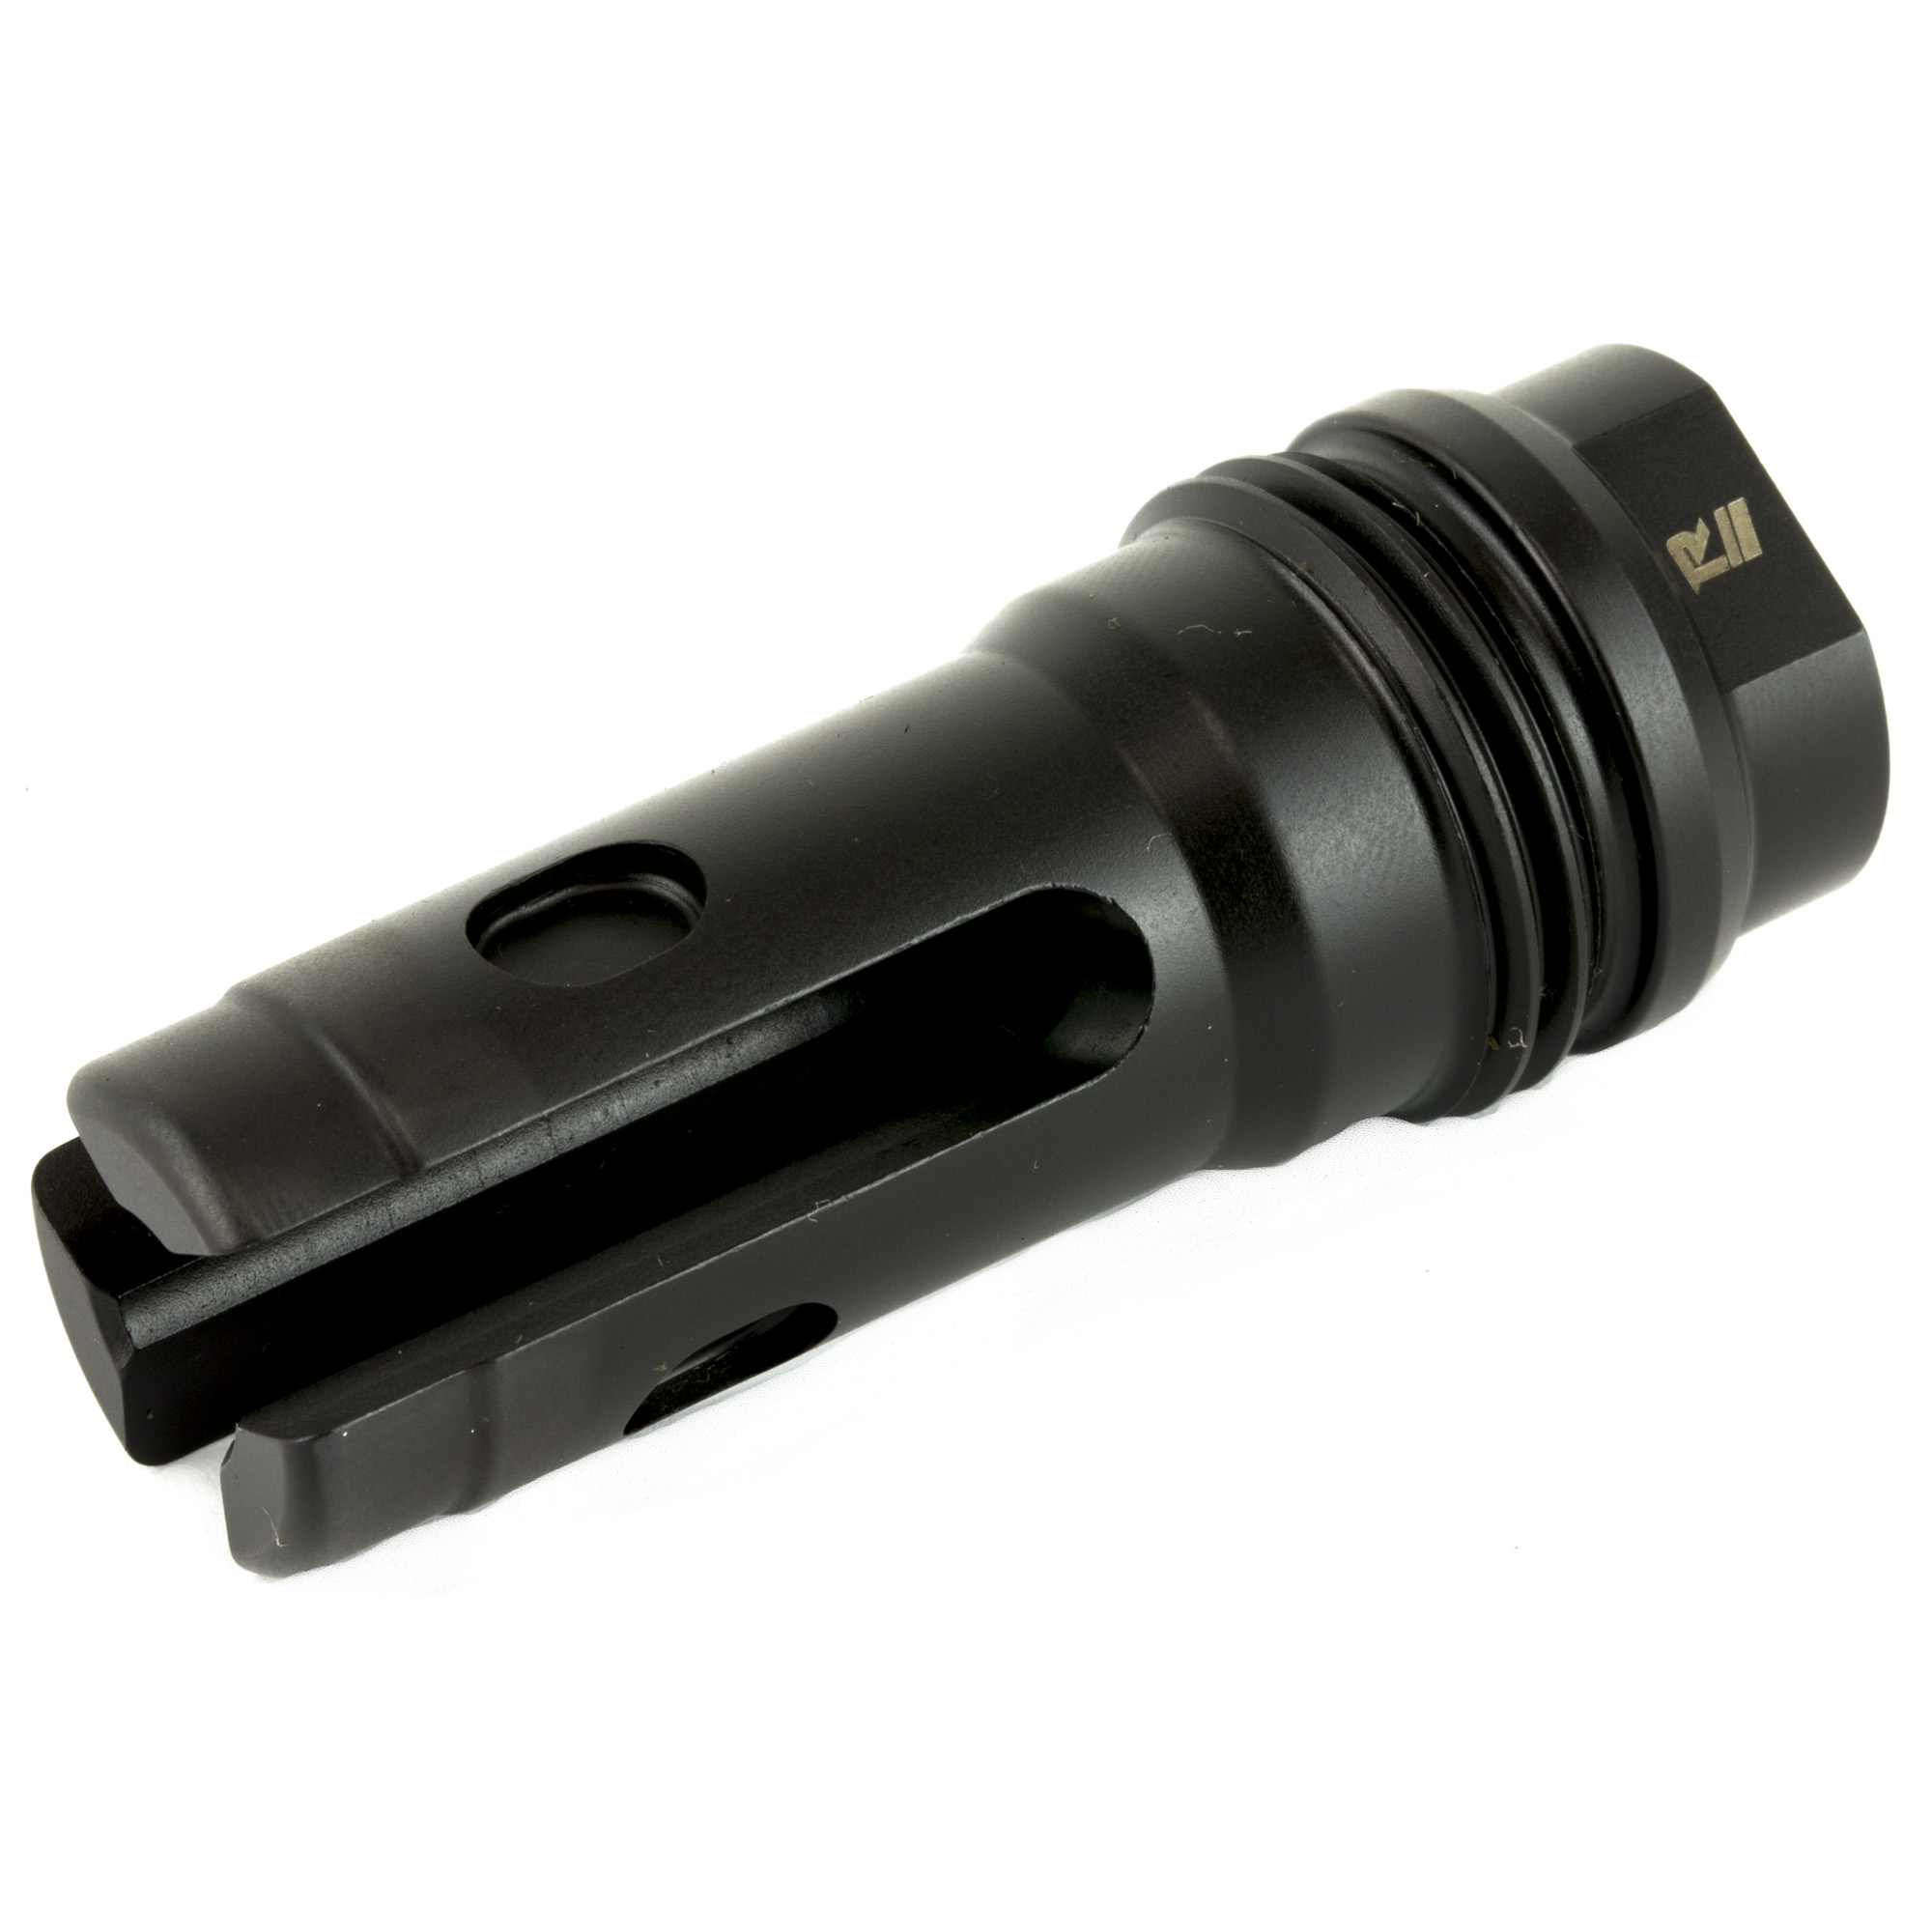 AR-15 Muzzle Devices